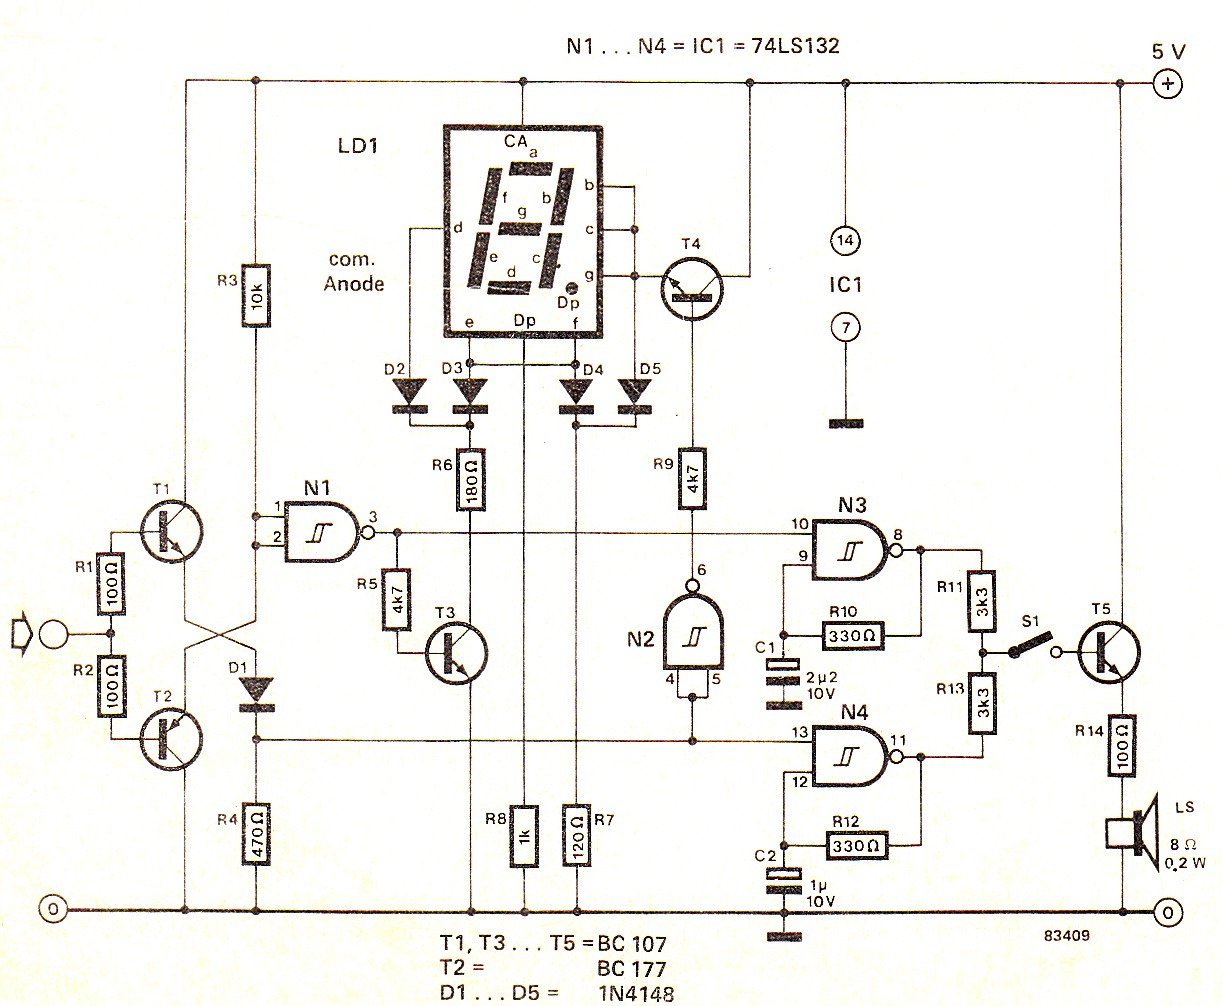 Musical Doorbell Schematic 3660040649 Gwqsdrzo Circuit Diagram Electronic Images Sc 1 St Readingratnet